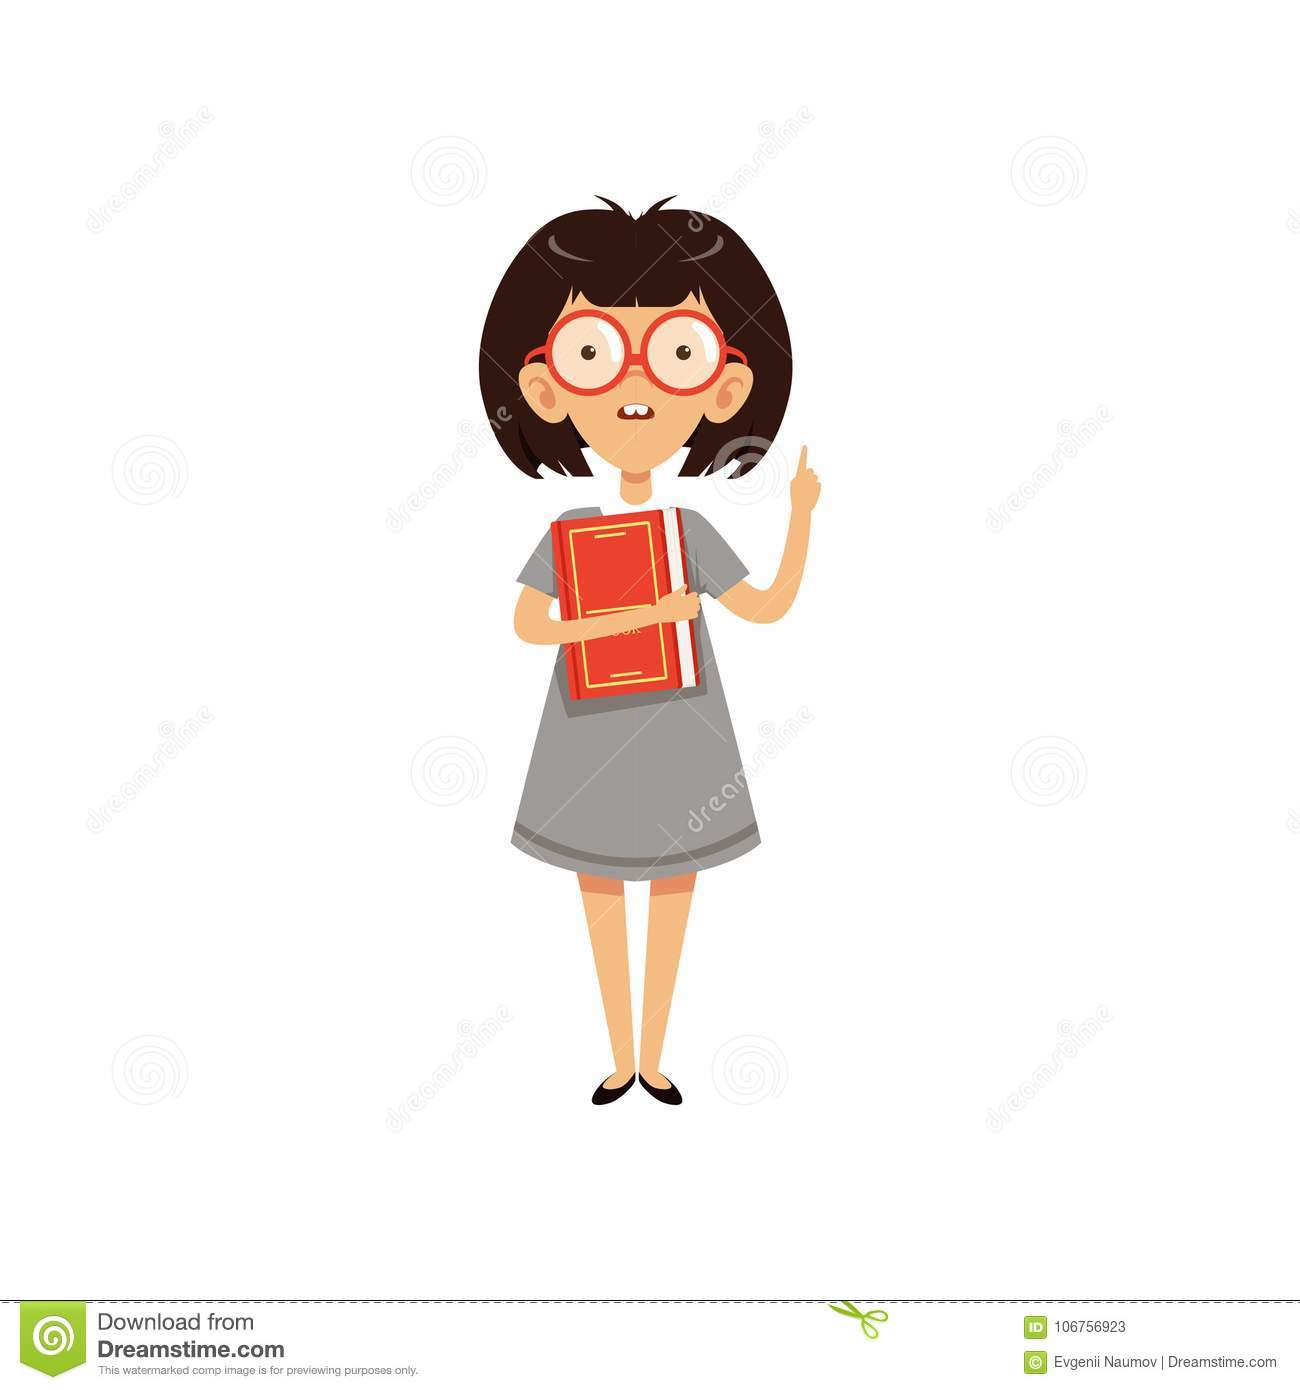 Funny Nerd Girl Holding Book And Index Finger Up Cartoon Character